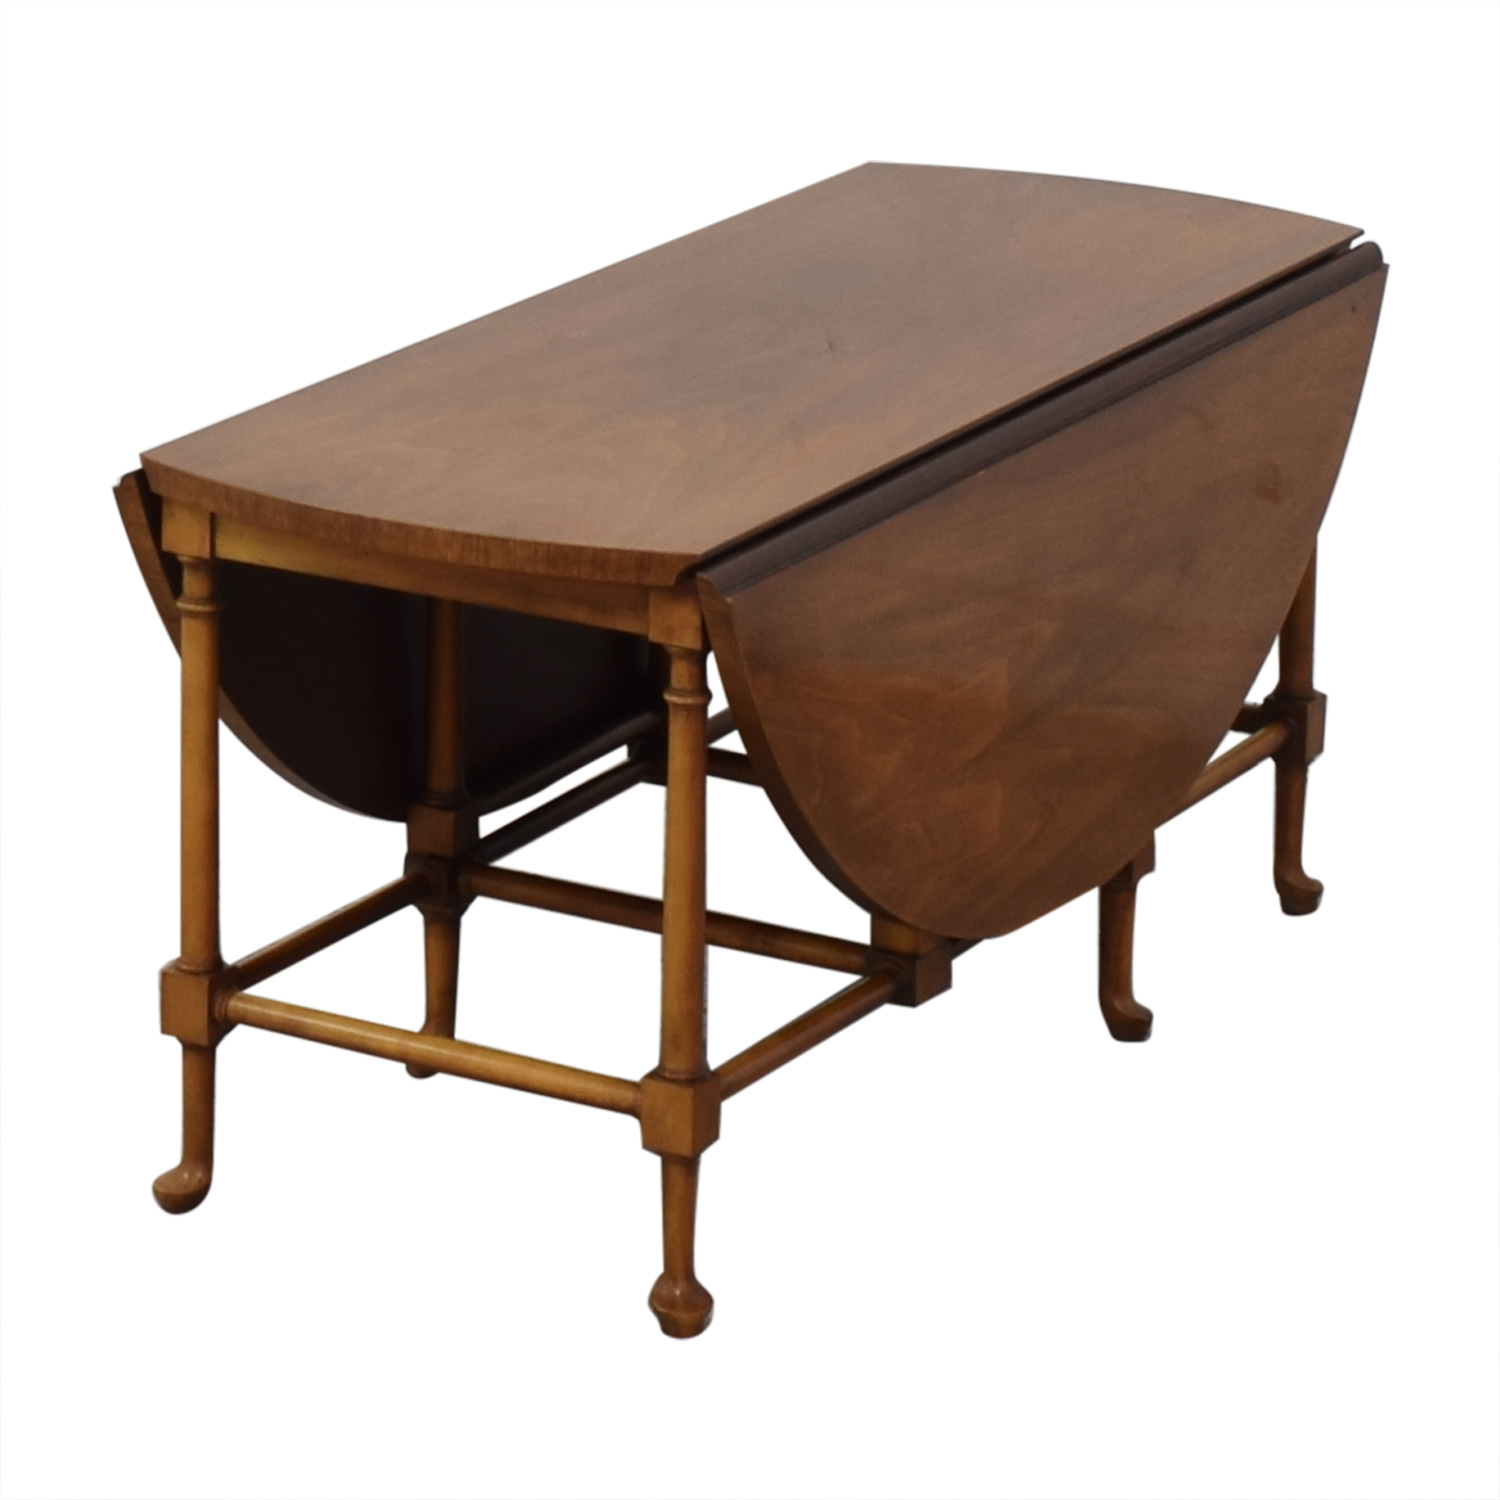 Baker Furniture Drop-Leaf Coffee Table / Tables